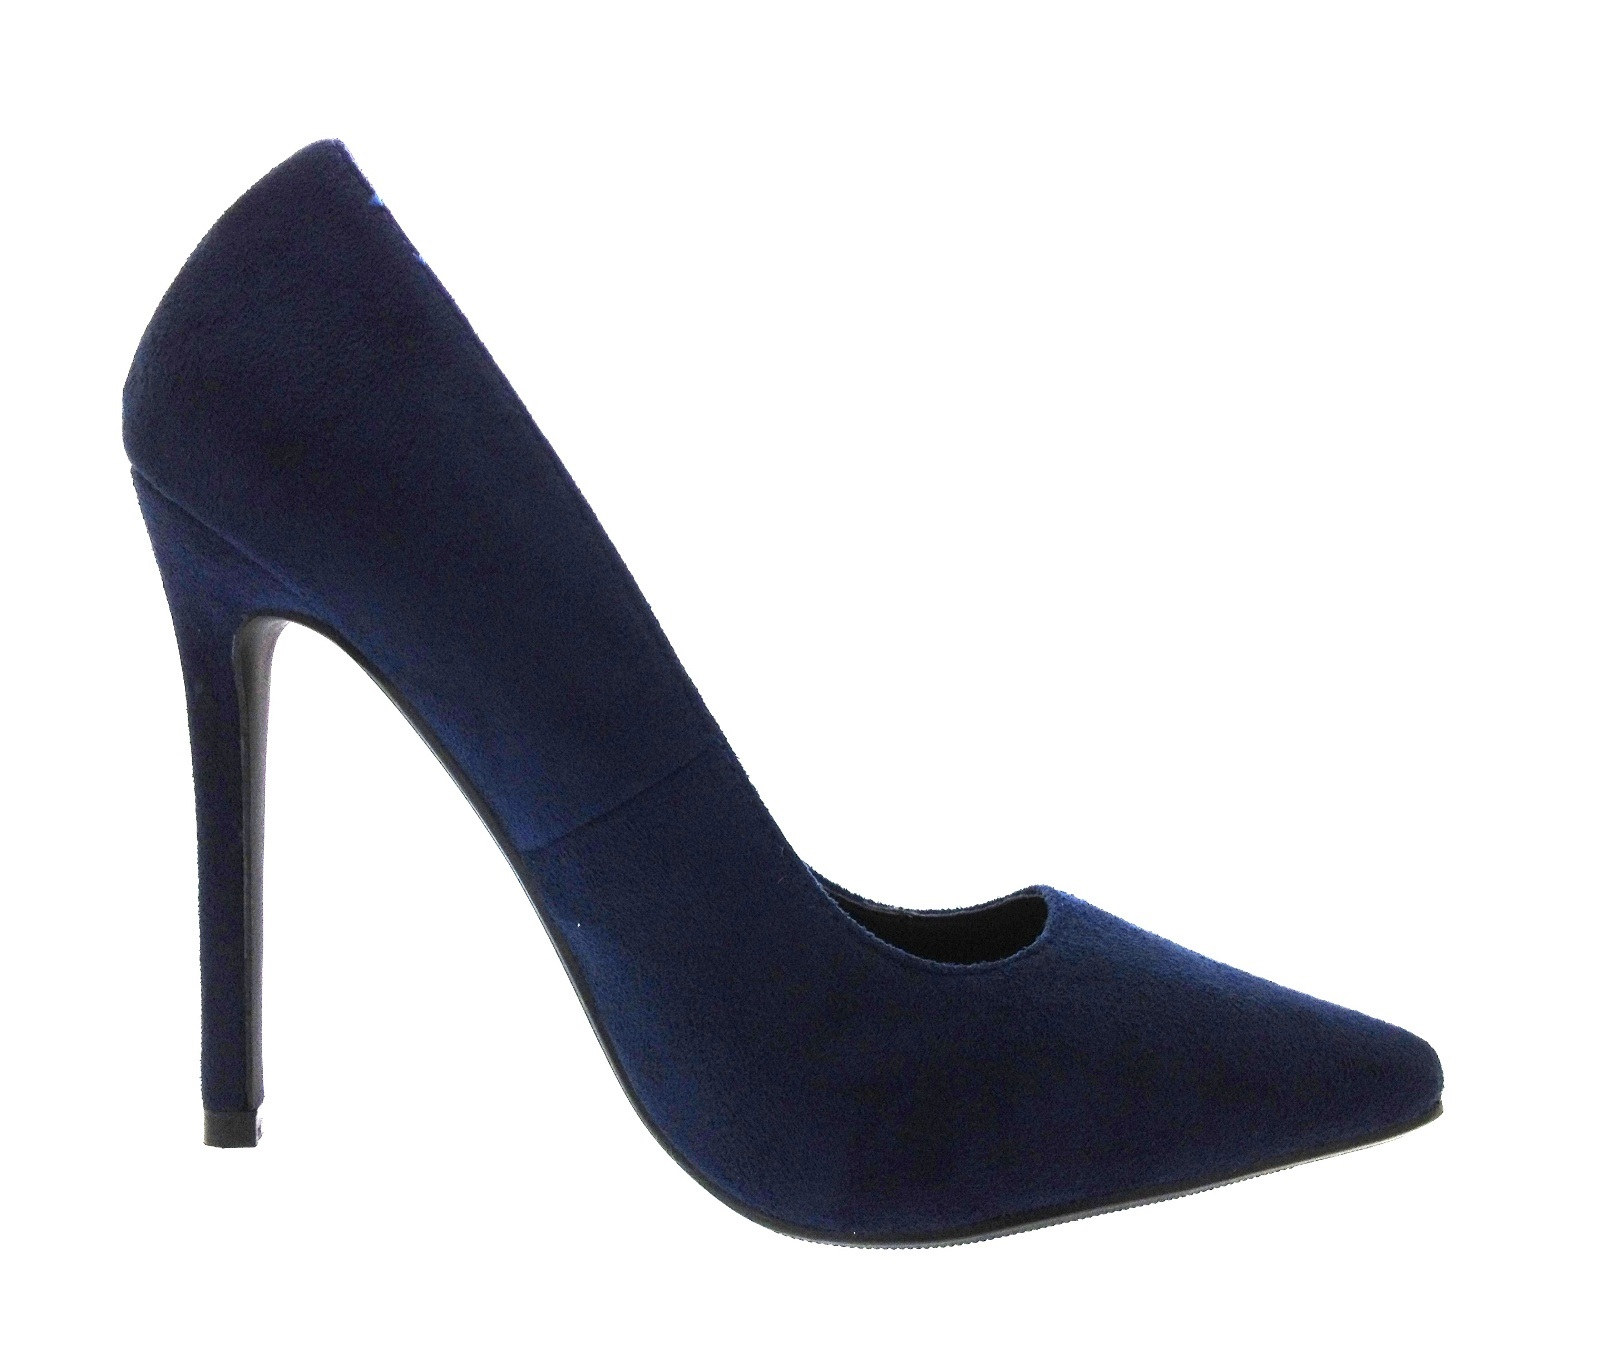 Navy Womens Heels - Is Heel